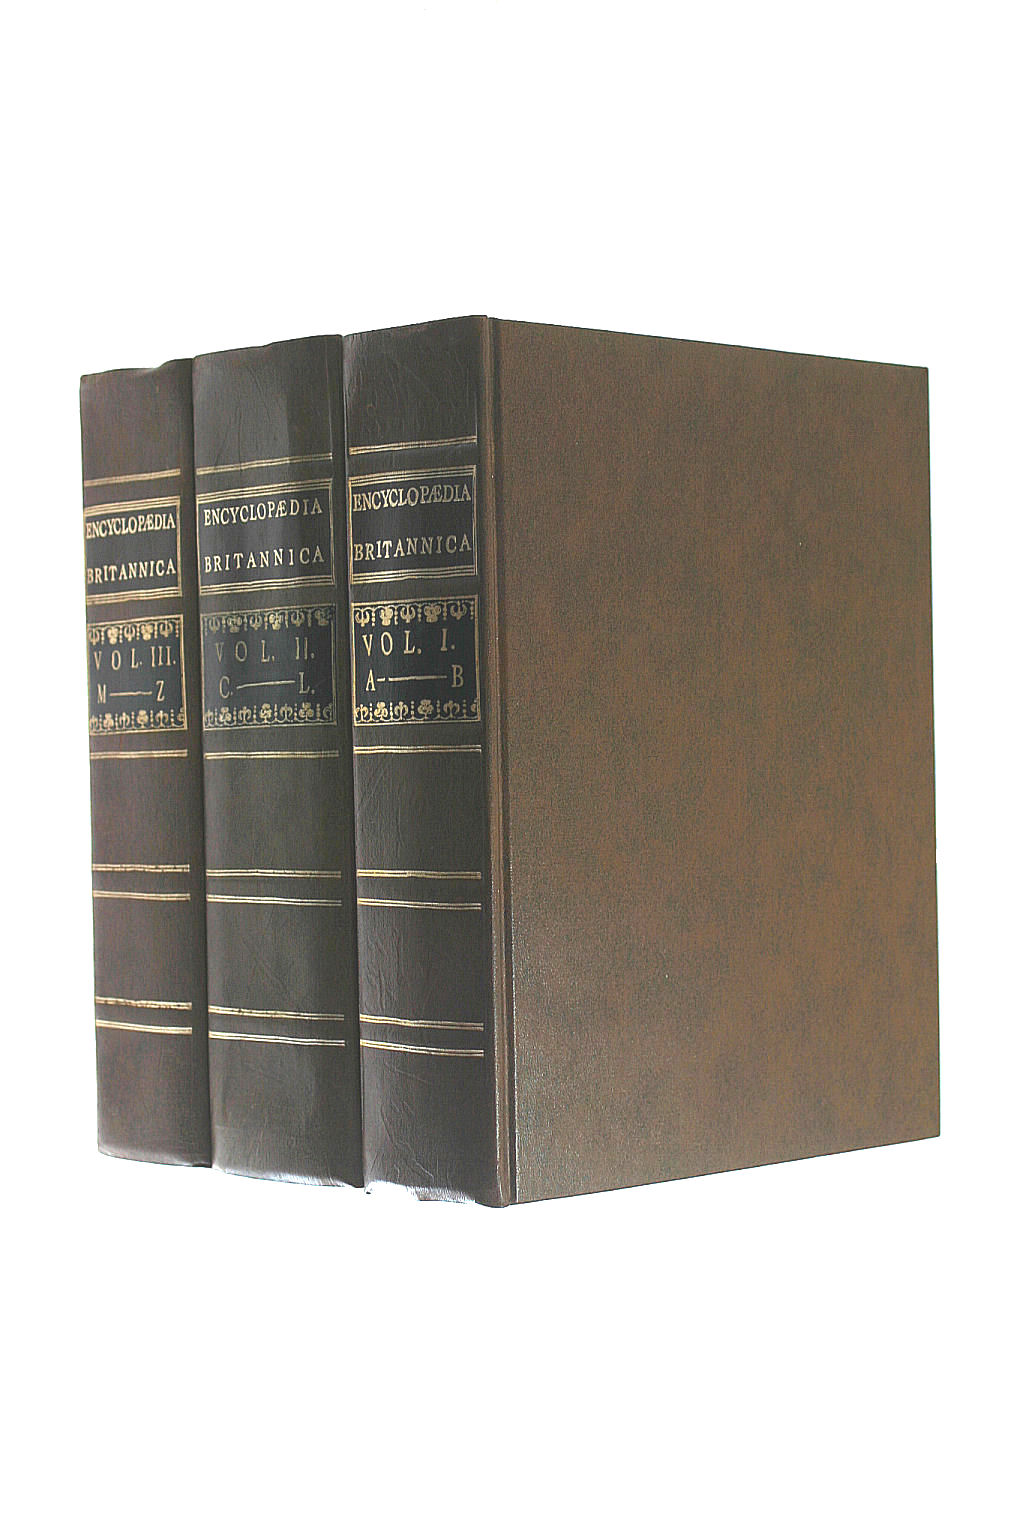 Image for Encyclopedia Britannica Facsimile First Edition (3 Volumes)